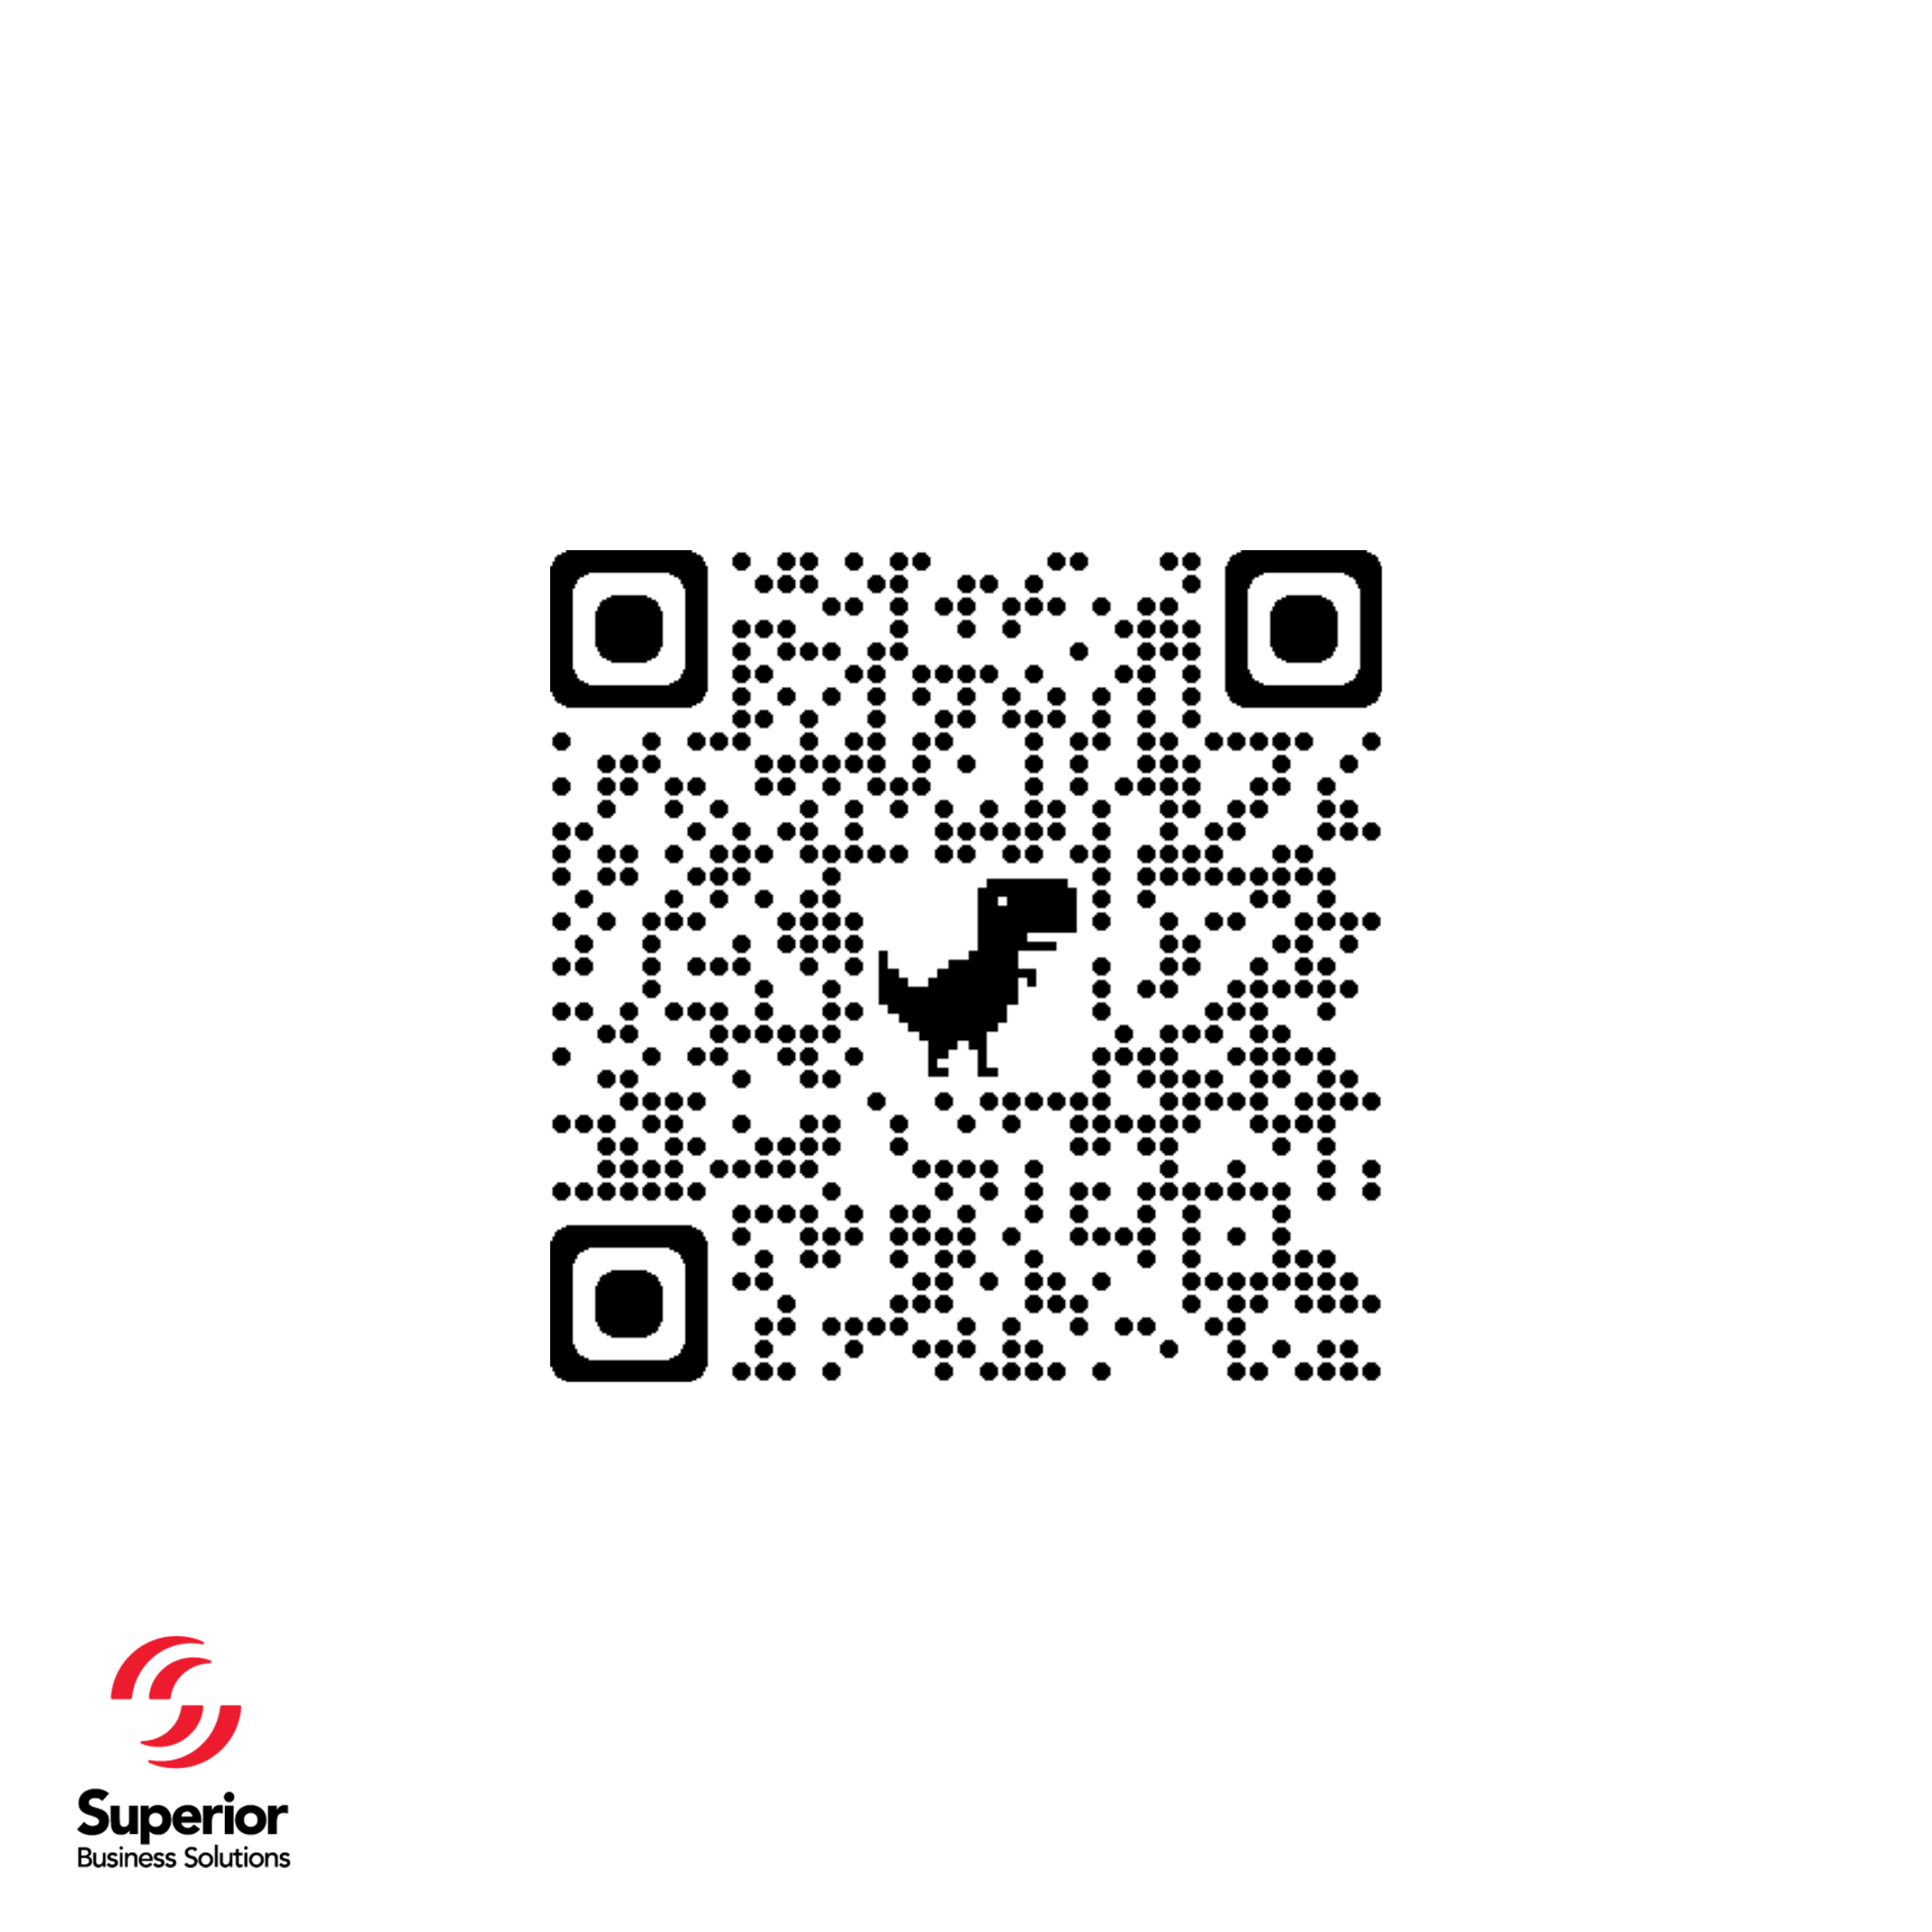 Will QR Codes help or hurt your business and sales enablement goals? Learn from our VP about both sides of the QR code debate HERE.